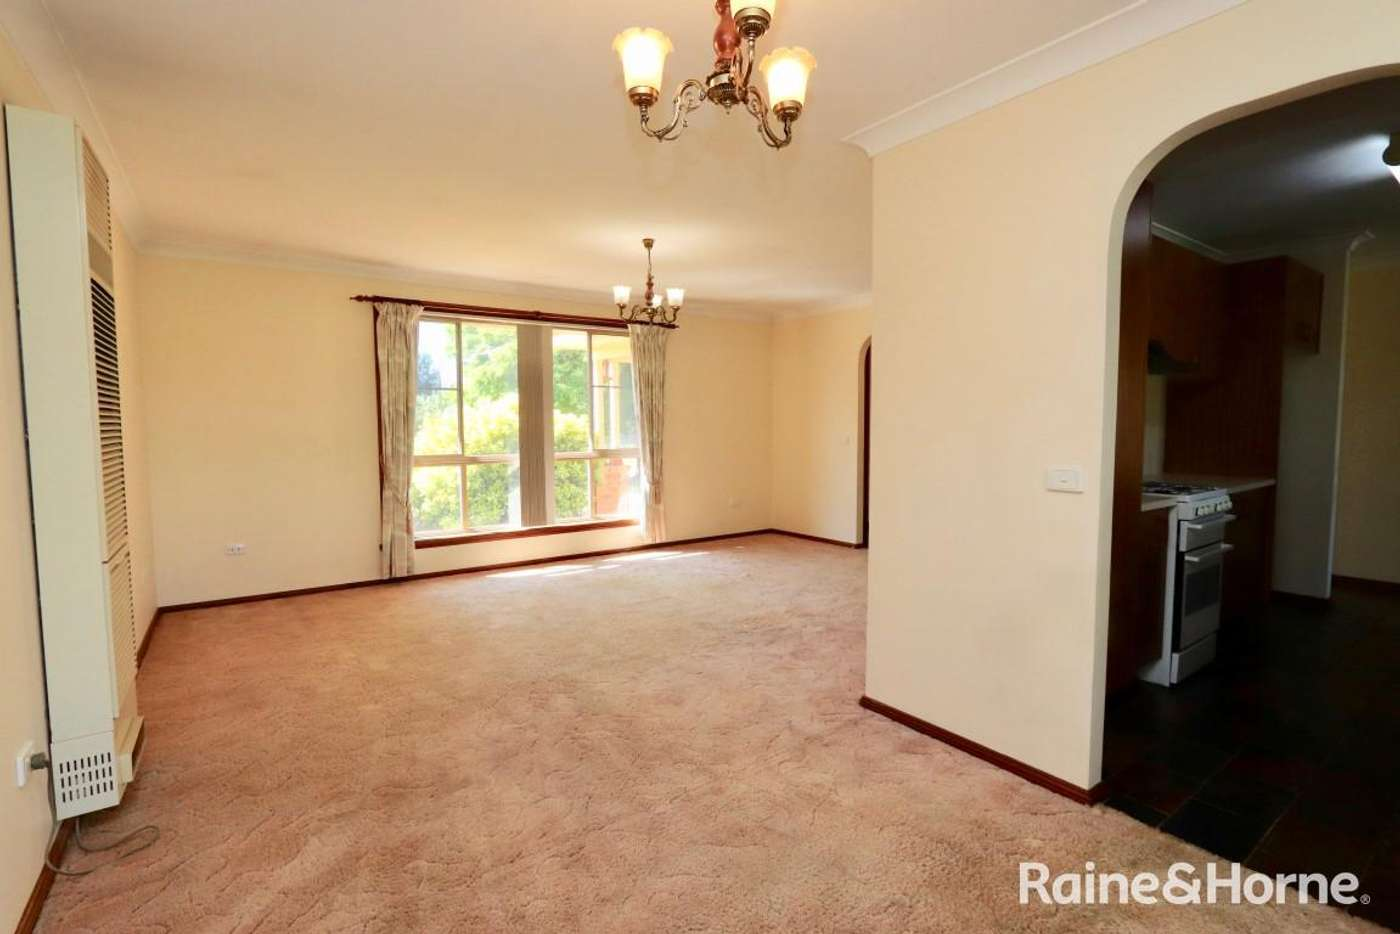 Seventh view of Homely house listing, 47 Freestone Way, Bathurst NSW 2795